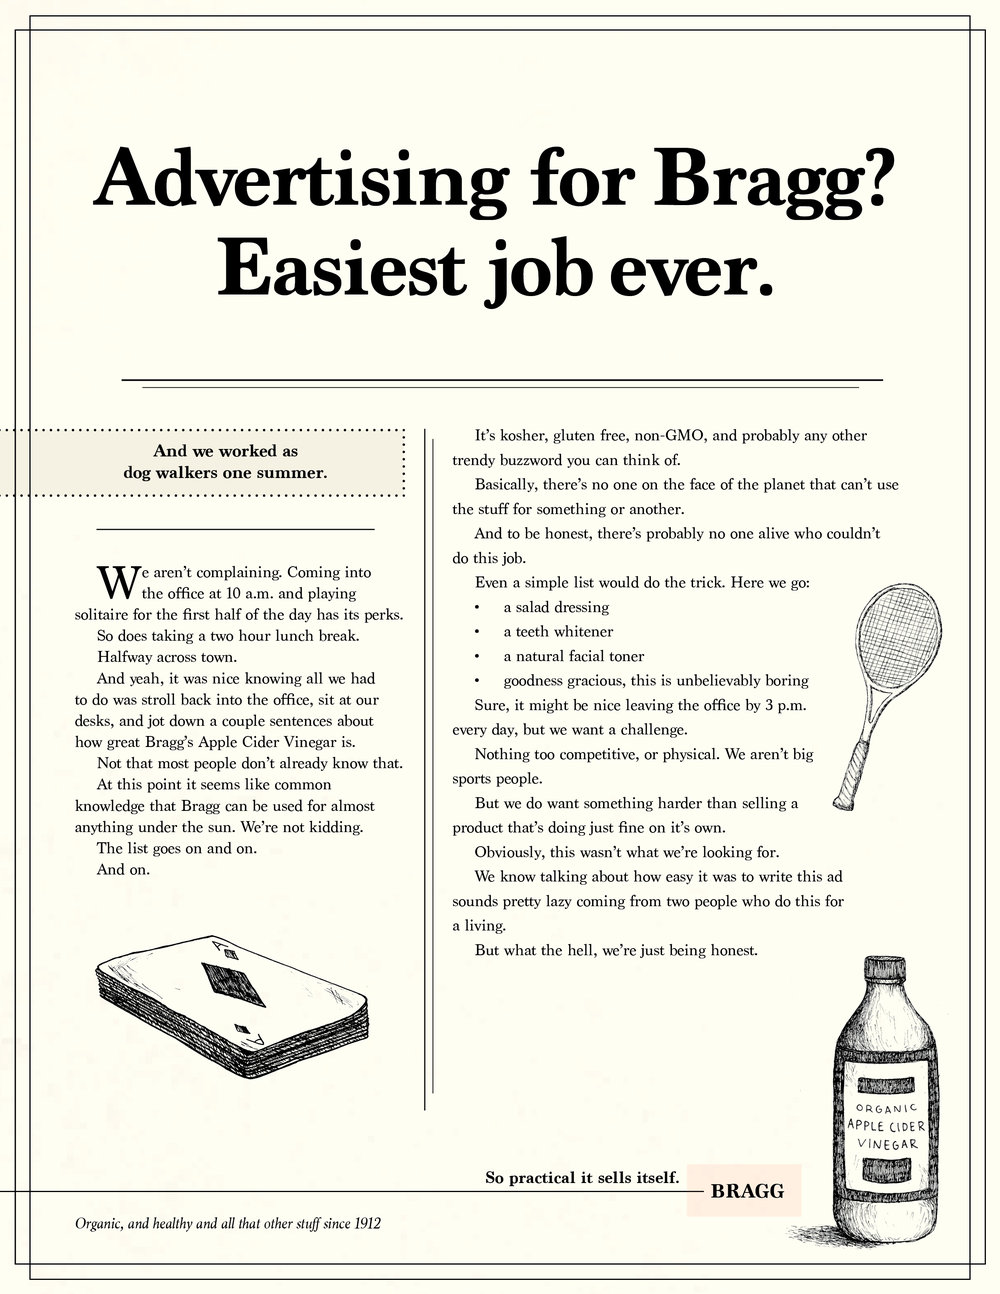 Bragg's Long Copy Ads3.jpg